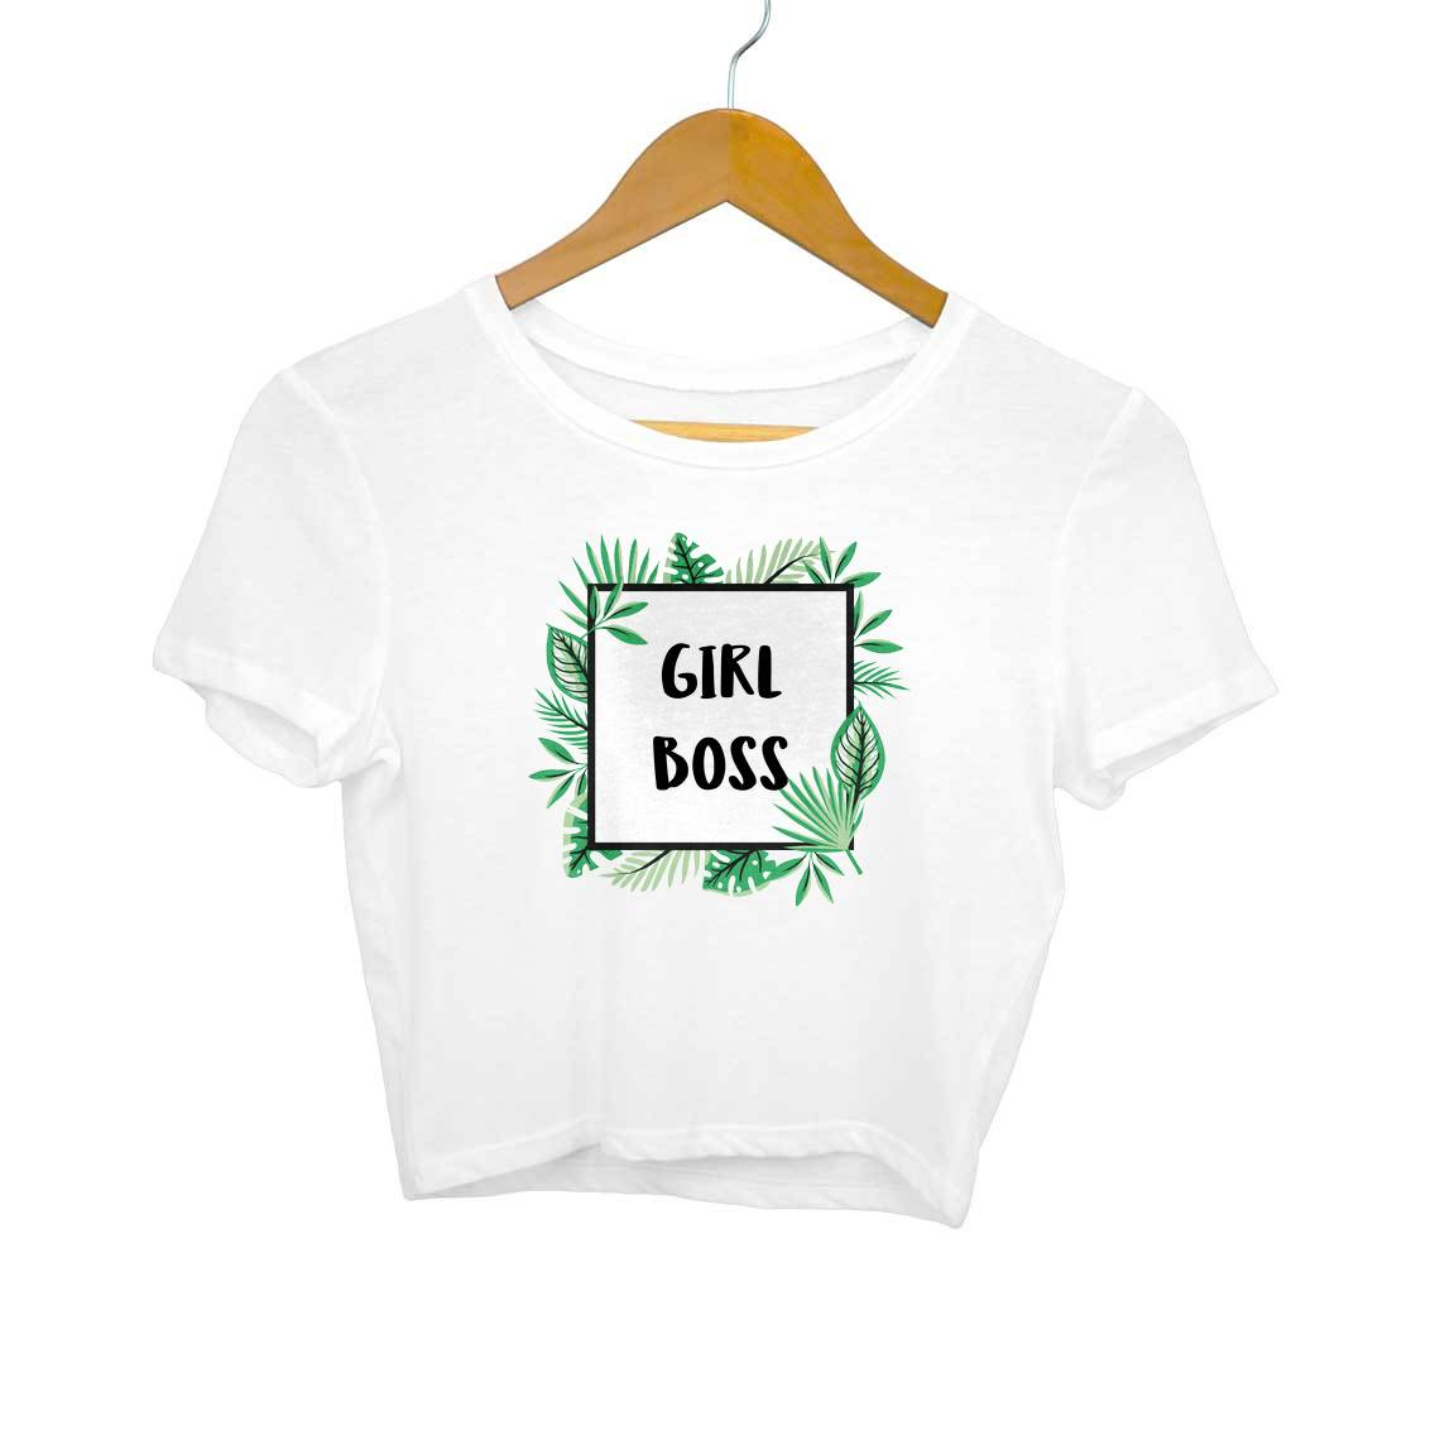 The Girl Boss Crop Top